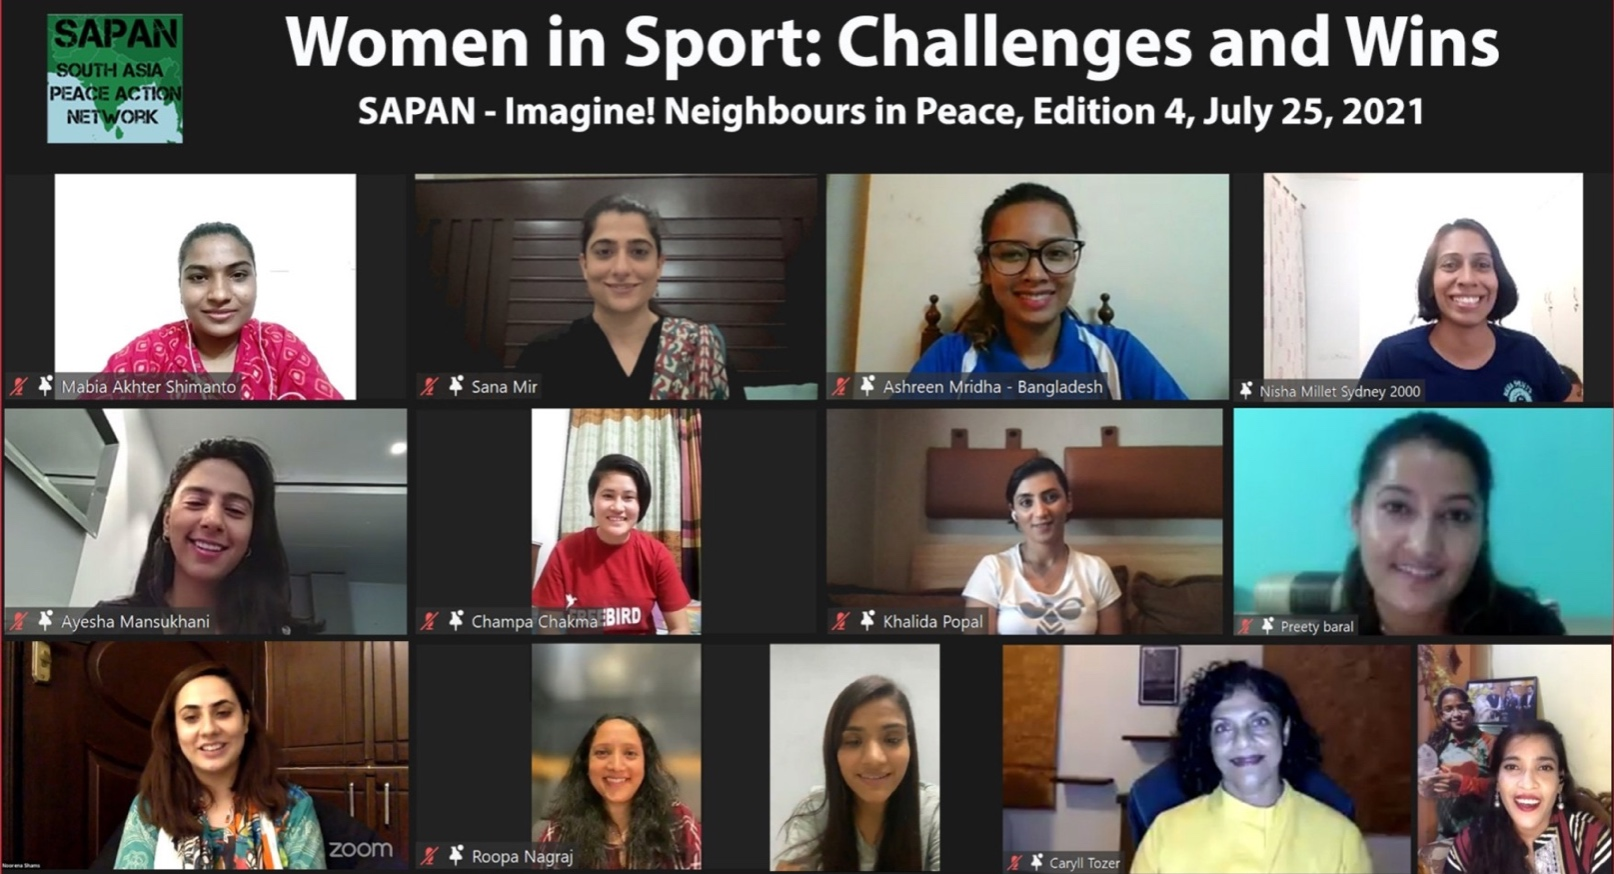 Struggles, successes of South Asian women athletes